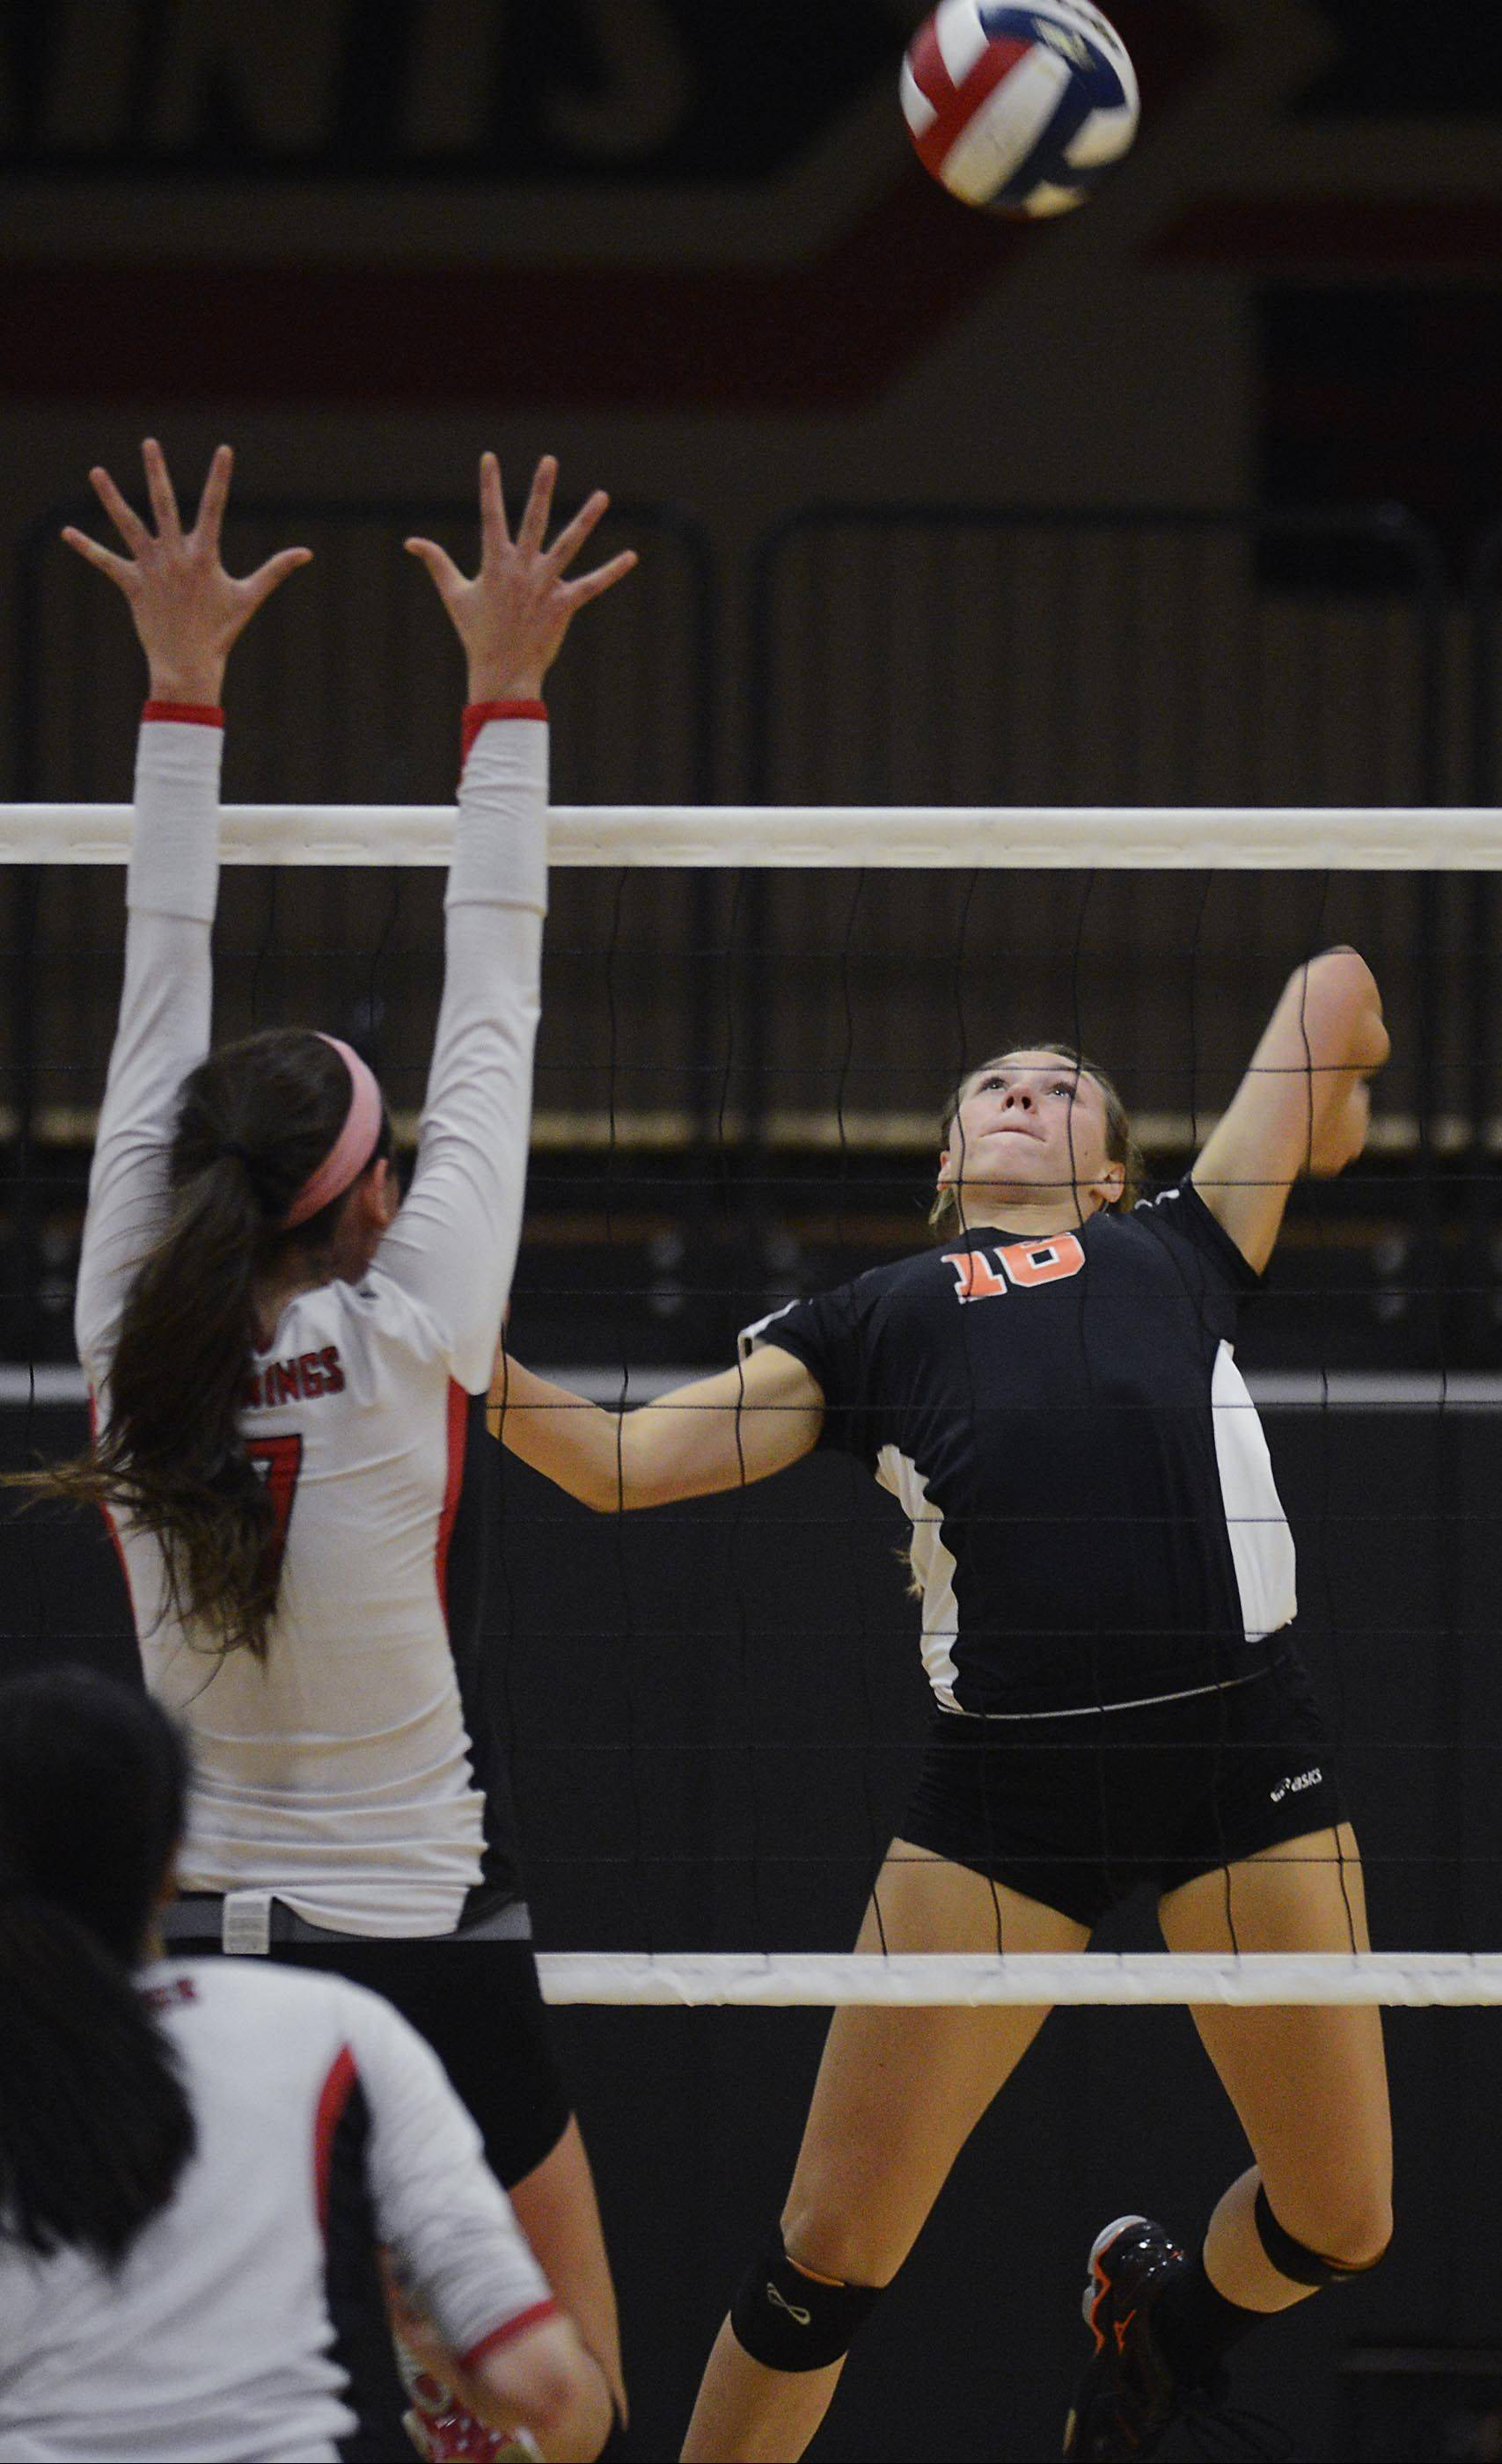 St. Charles East's Dana Voltolina winds up to spike the ball against Benet Academy's Whitney Battoe Wednesday in St. Charles.